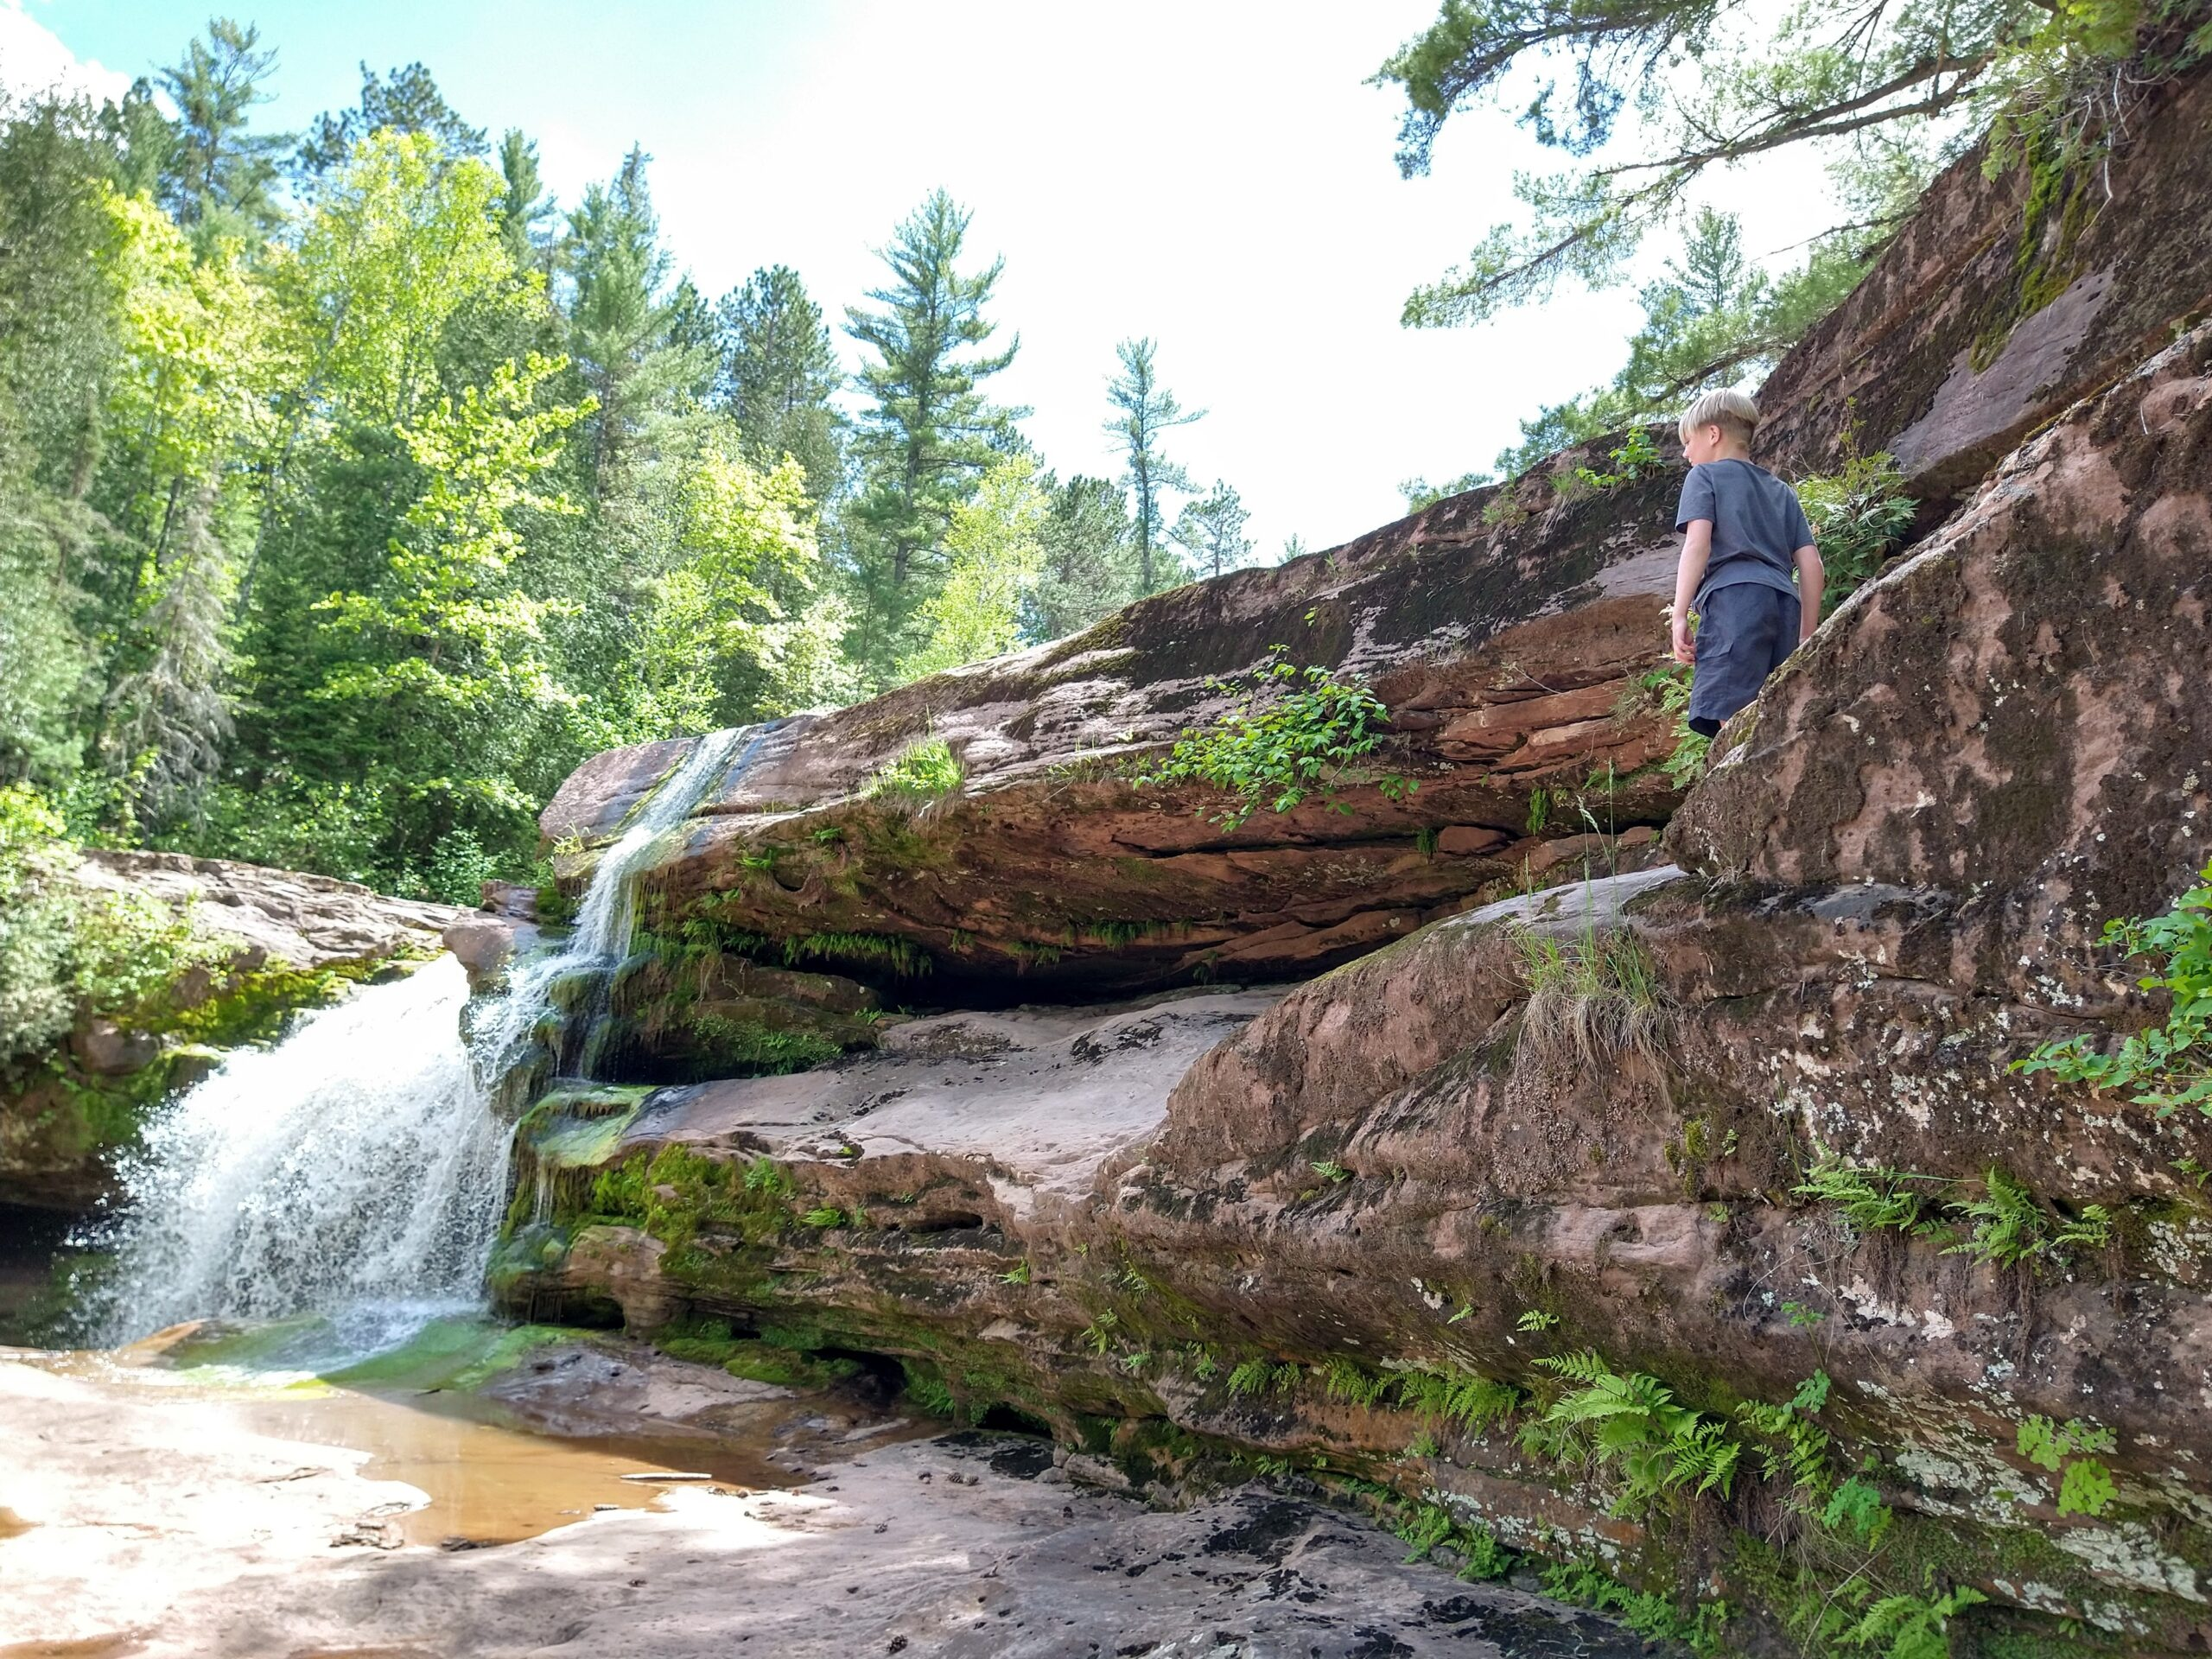 A child stands on a rock ledge, observing the waterfall.